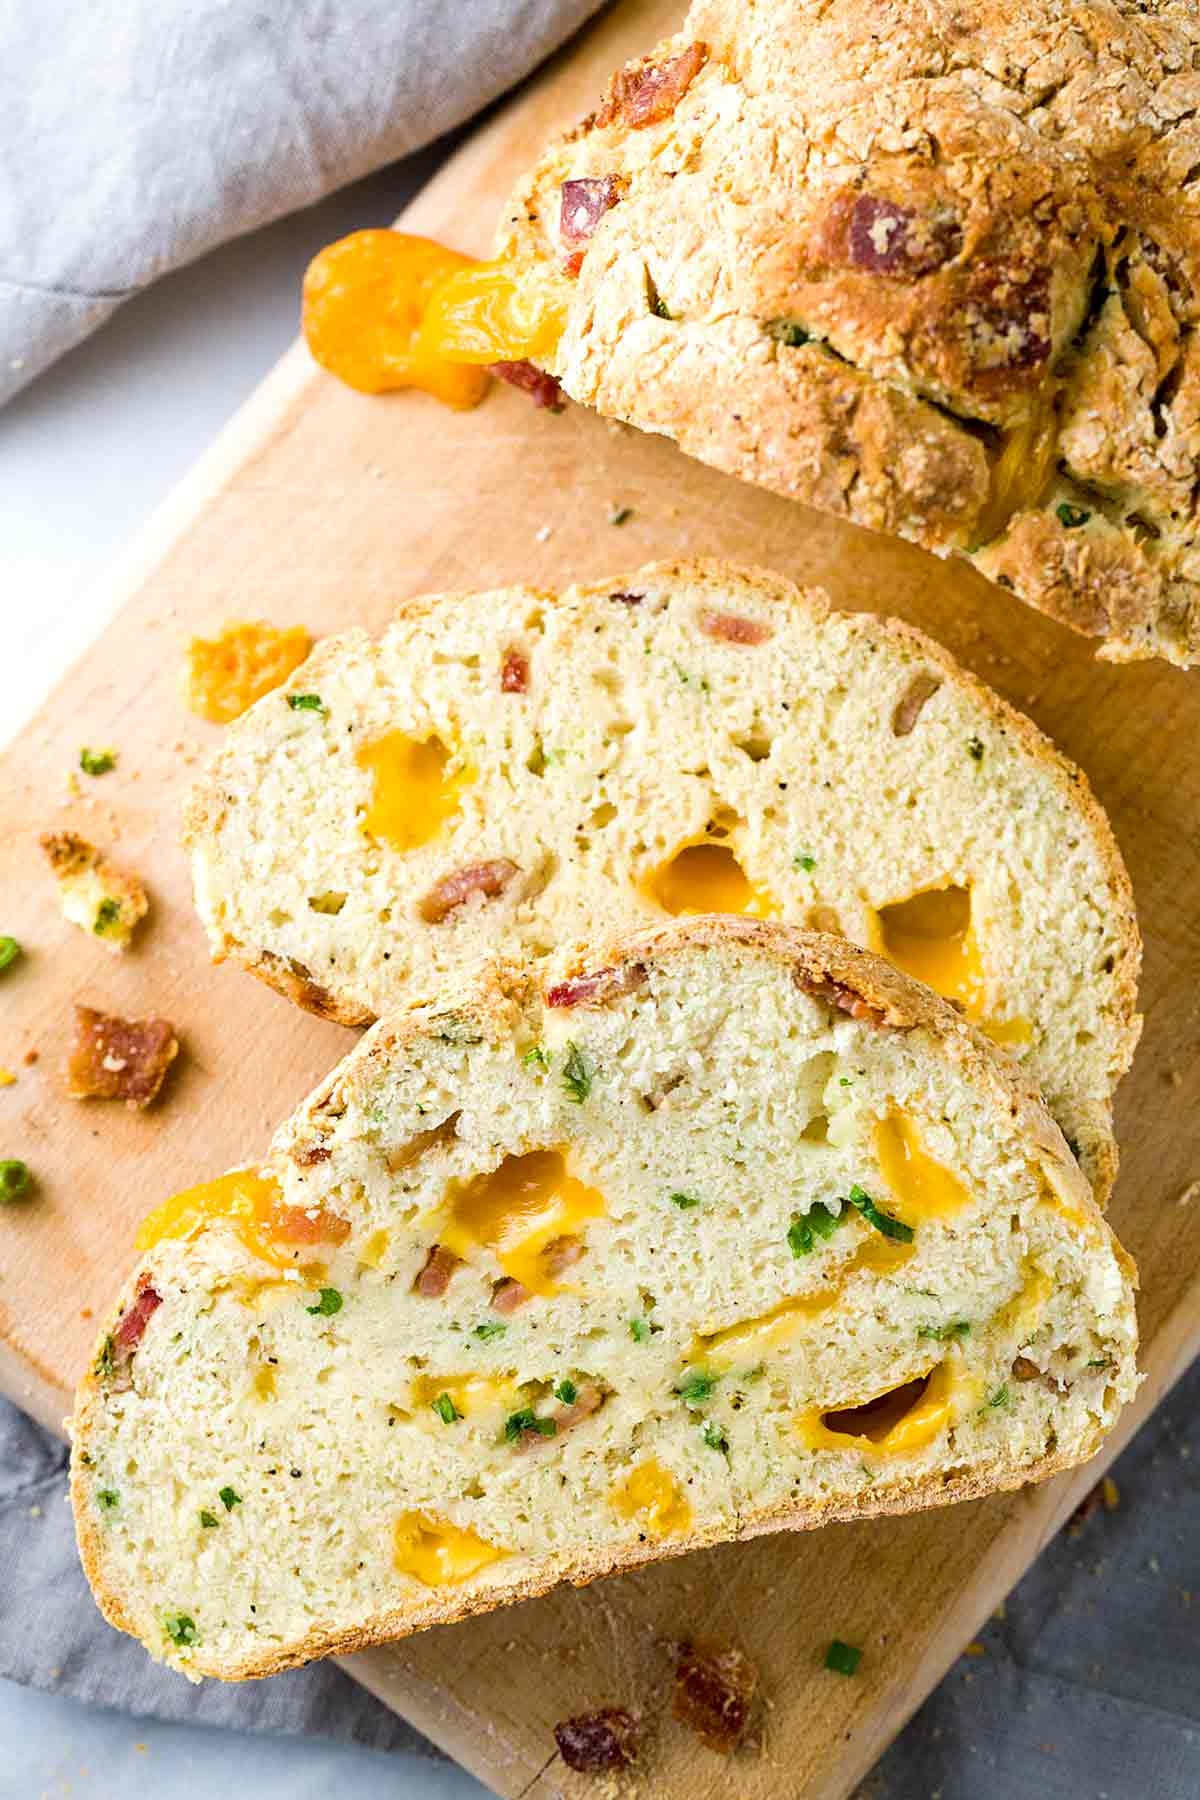 Irish Cheddar and Bacon Soda Bread - A twist on a traditional recipe, this loaf is packed with melted cheese, savory bacon and scallions.   jessicagavin.com